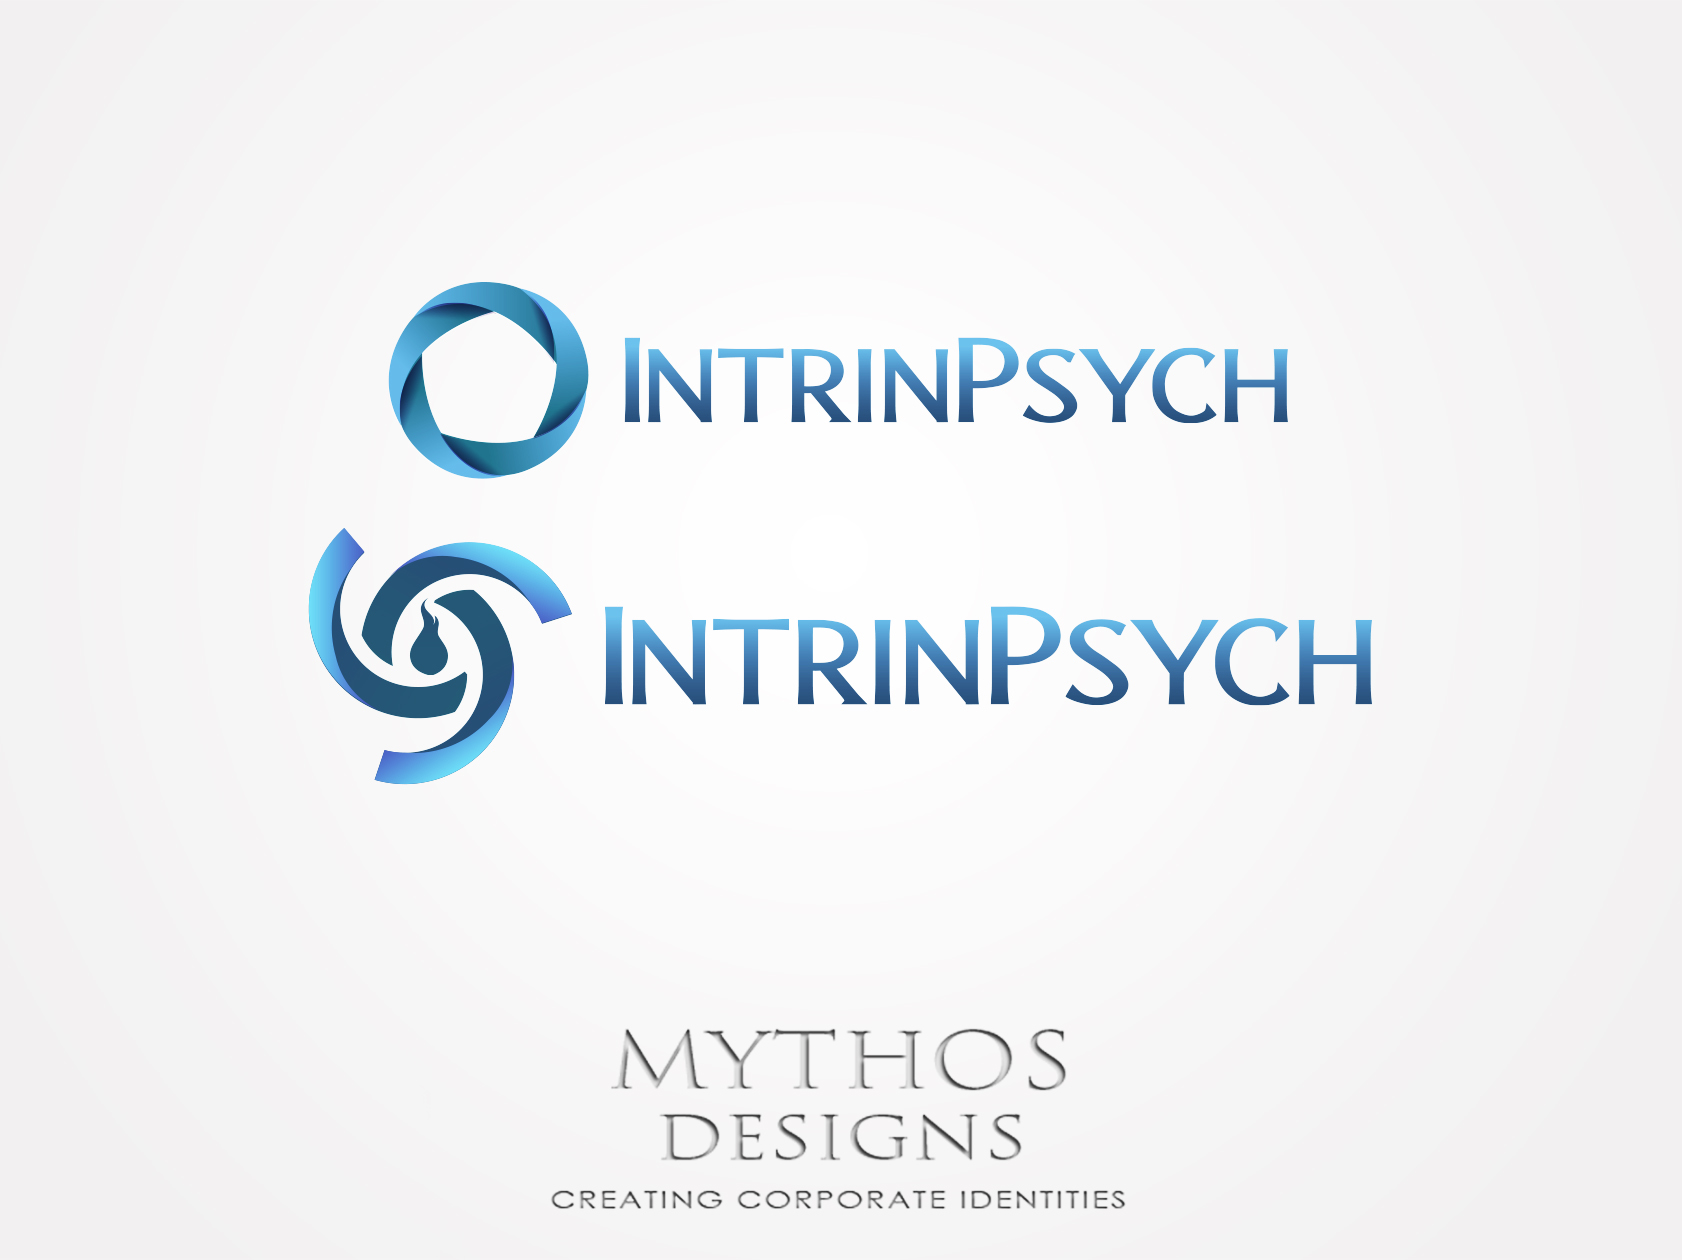 Logo Design by Mythos Designs - Entry No. 203 in the Logo Design Contest New Logo Design for IntrinPsych.